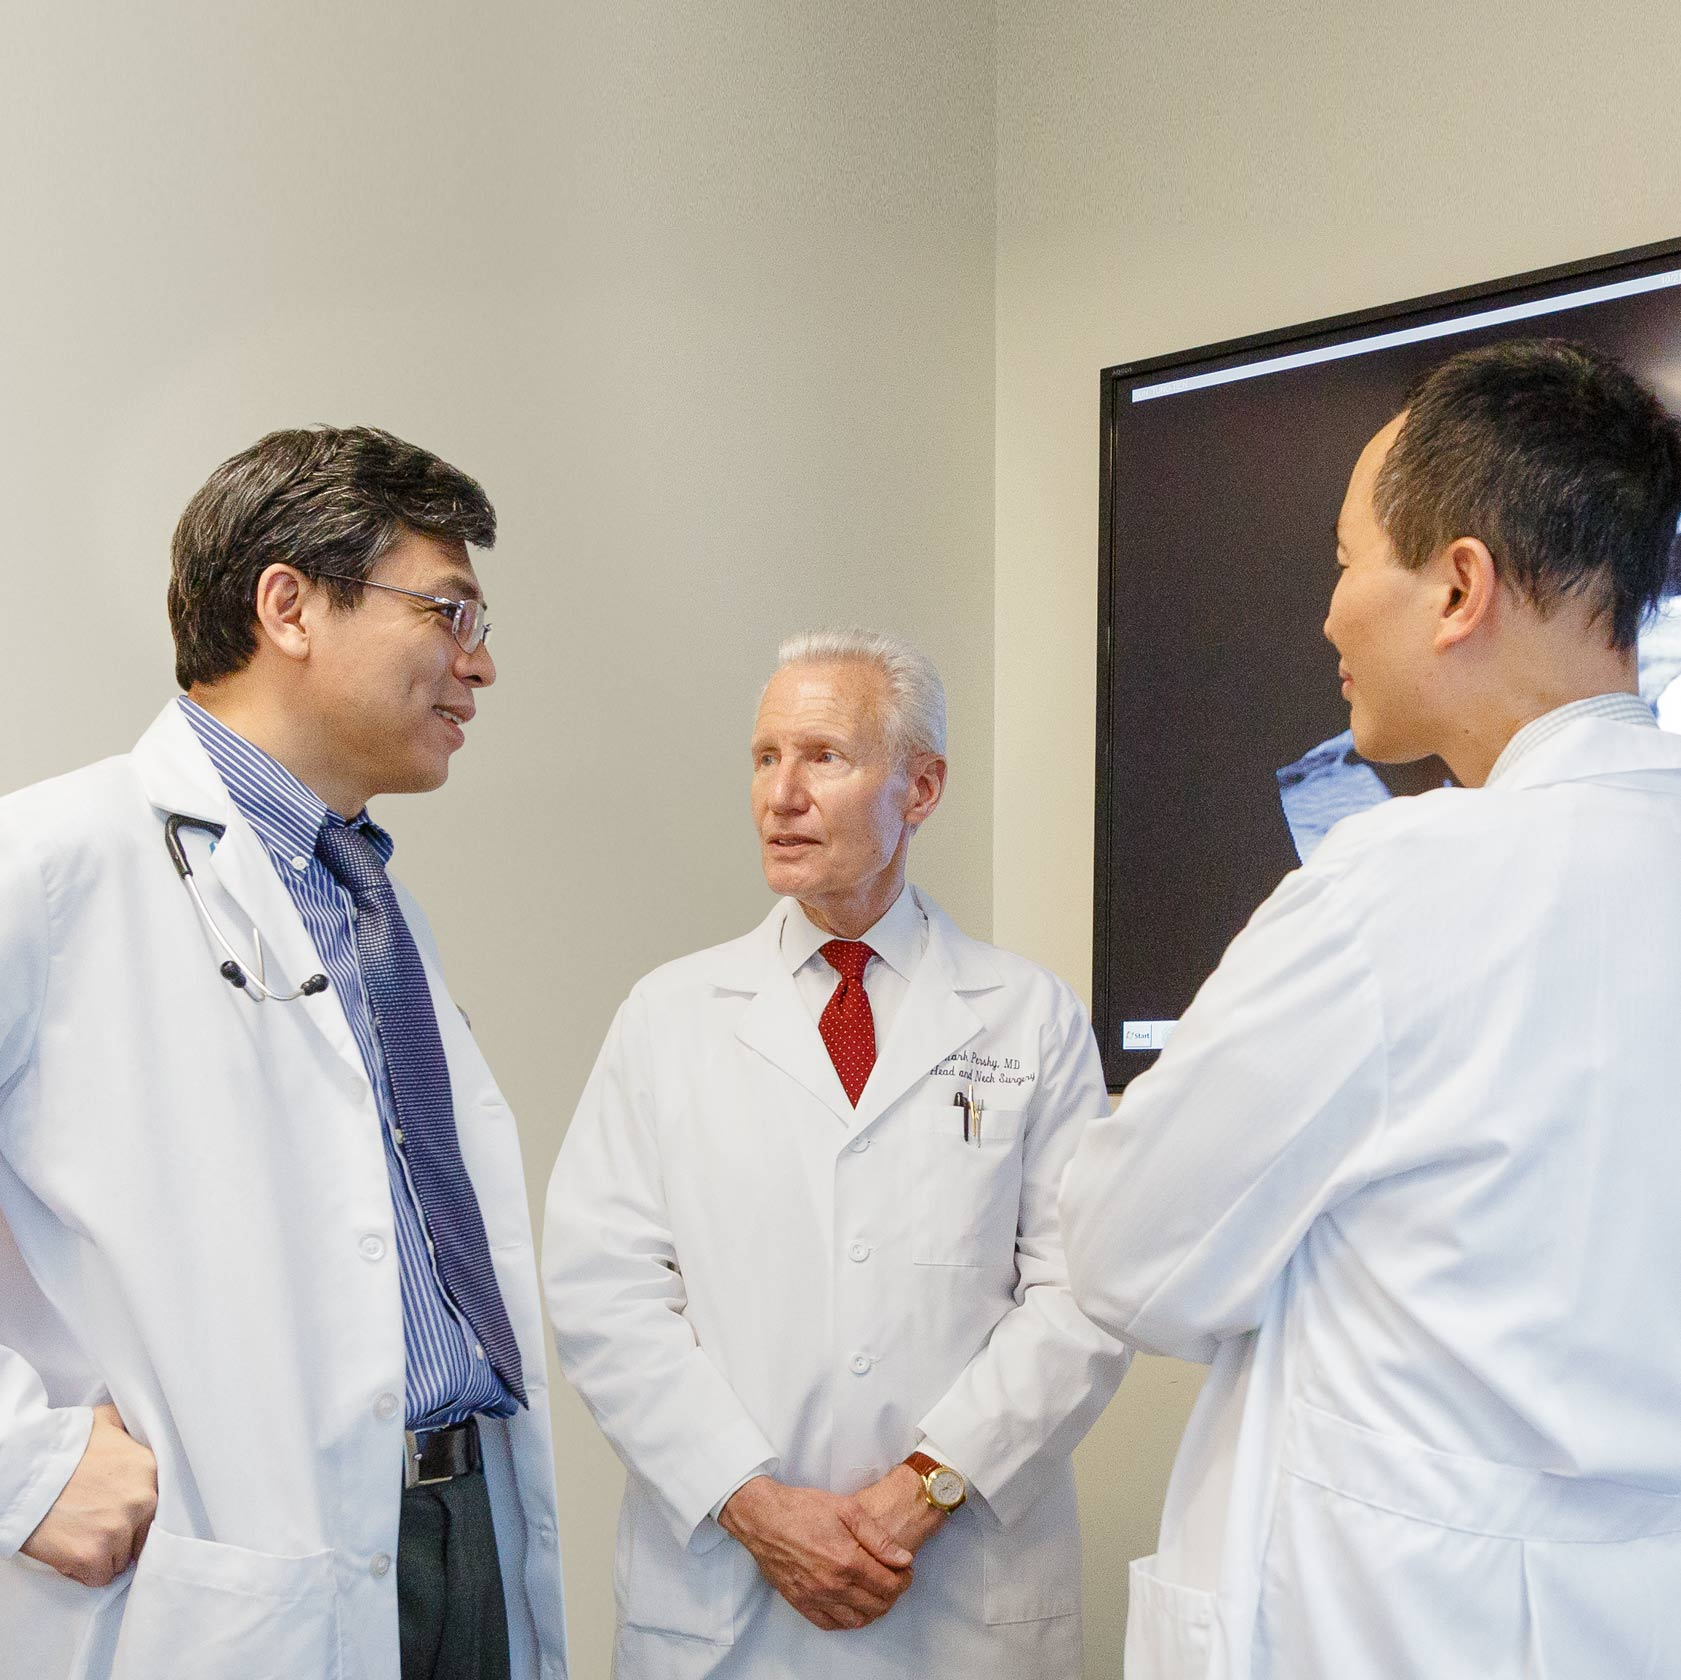 Doctors at Perlmutter Cancer Center